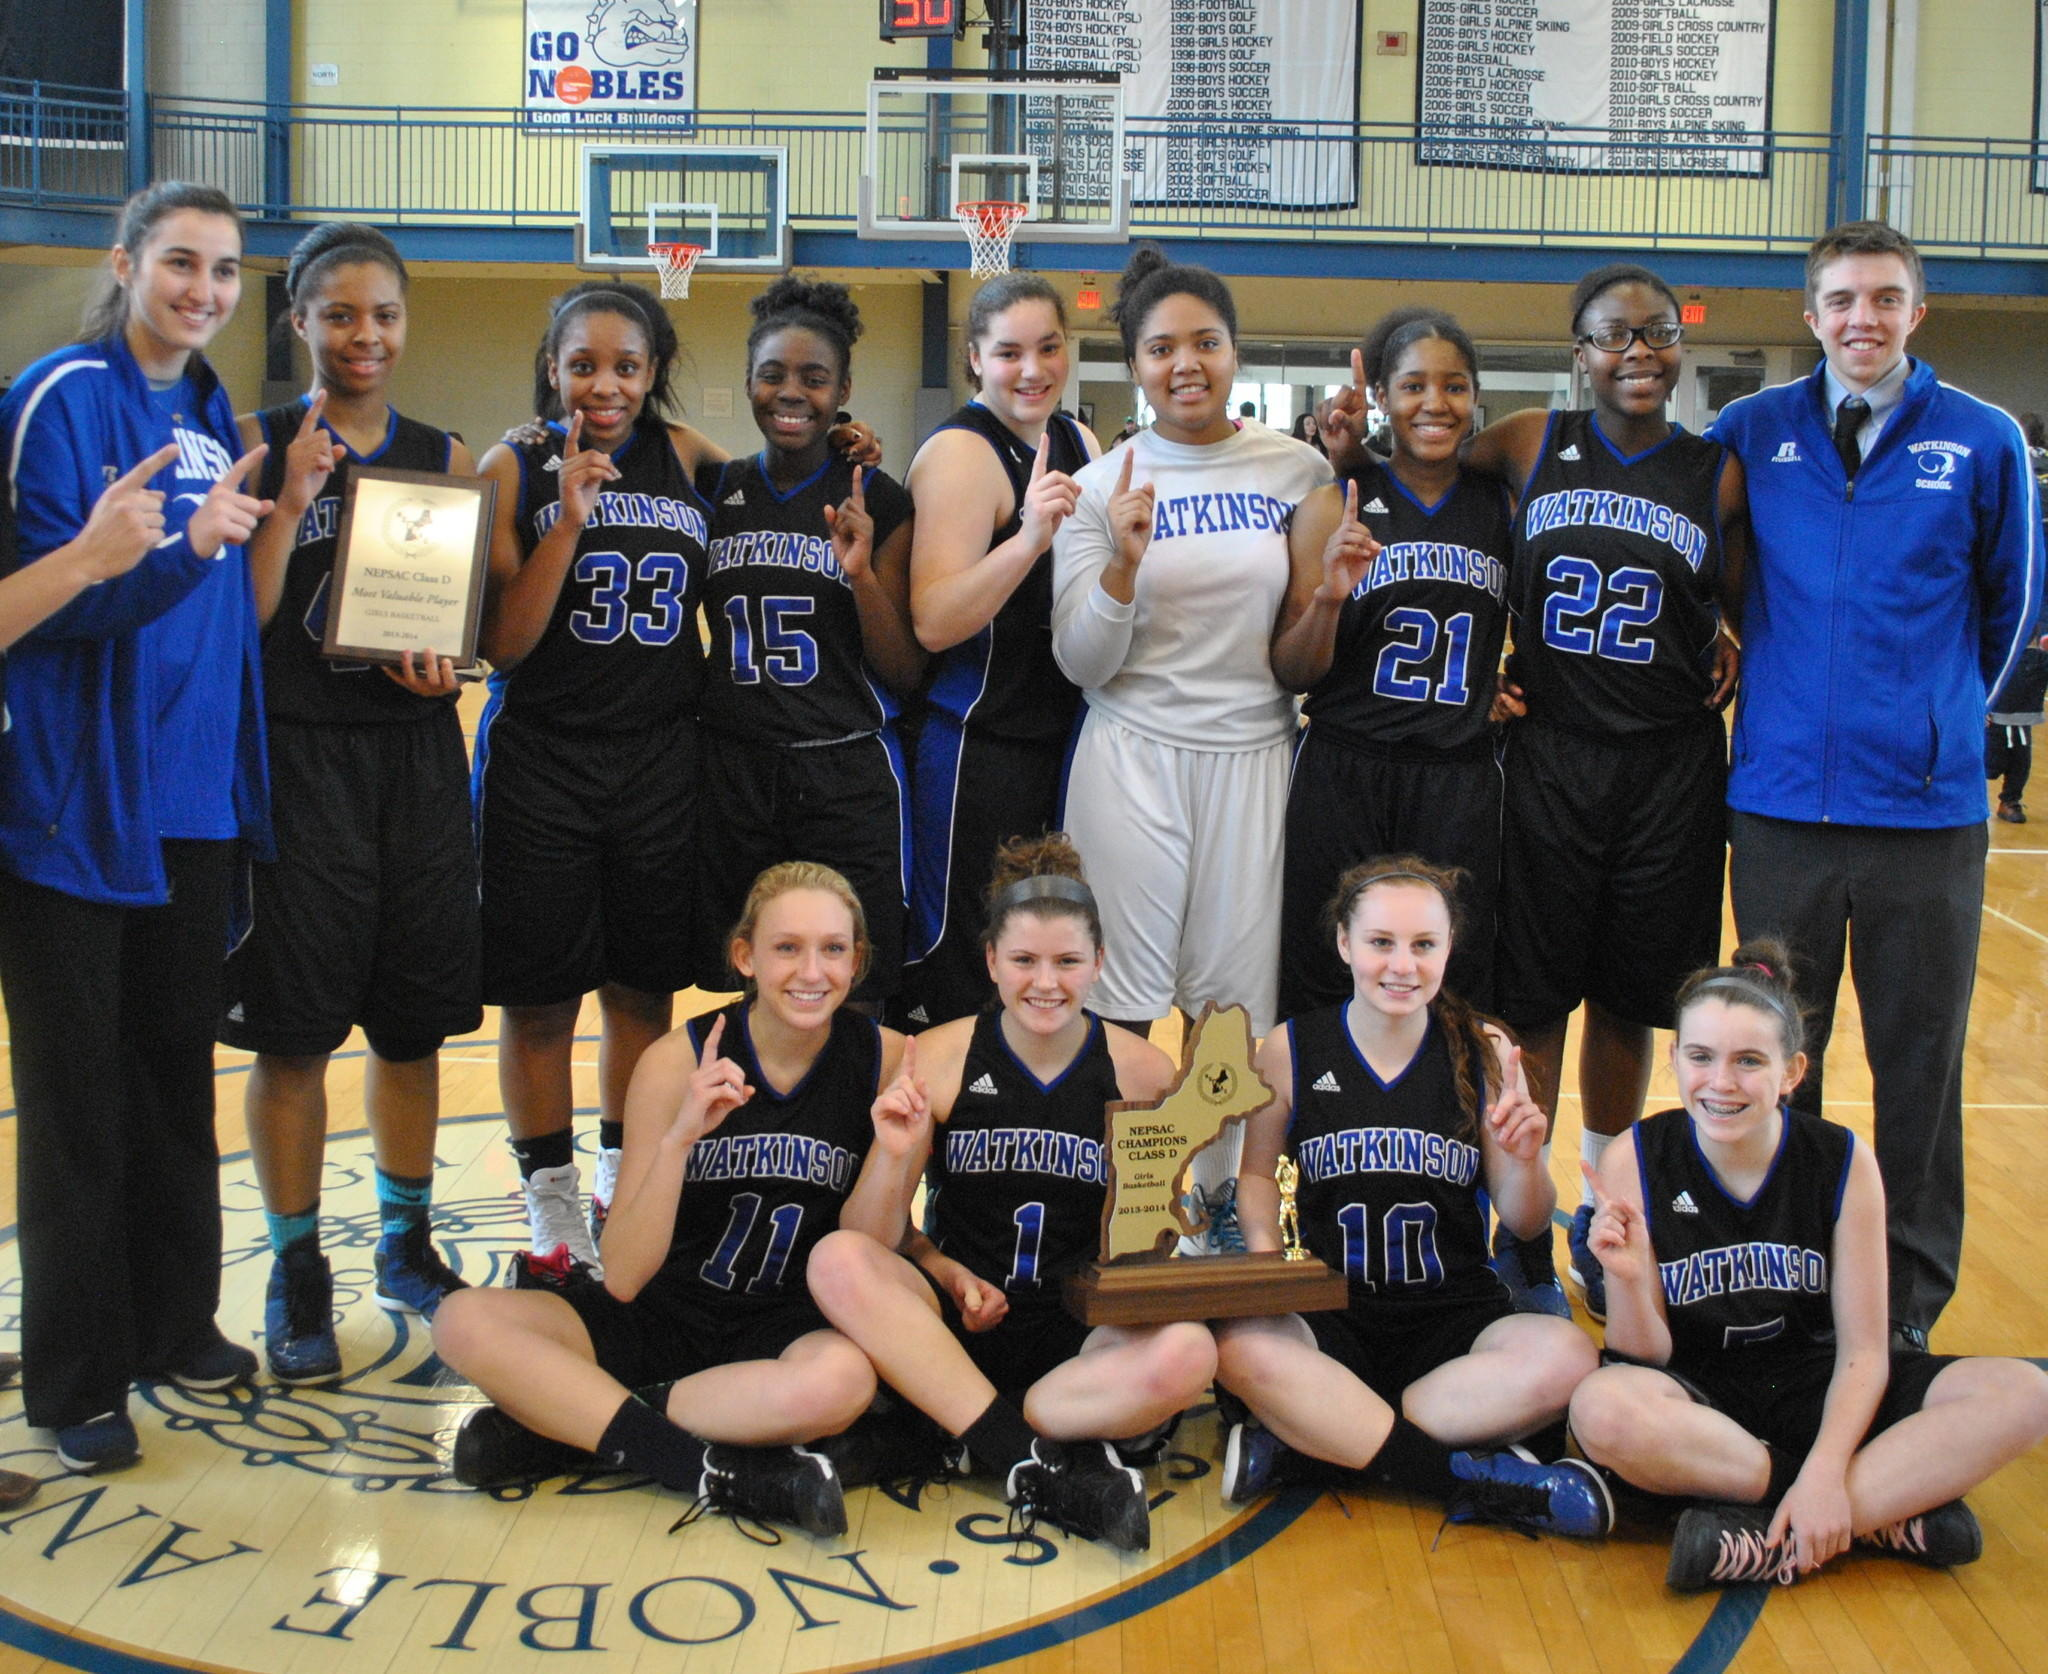 Top row, from left to right: Busra Saral (Turkey), Tianna Conway (Manchester), Taylor Saunders (Hartford), Erin Caesar (Windsor), Victoria Santiago (West Hartford), Skyler O'Neil (Windsor), Amber Fowler (Hartford), LeeAnne Green (Windsor), Andrew Owens '08 (Assistant Coach, West Hartford); bottom row from left to right: Hannah Davis (Marlborough), Michaela Boyle (West Hartford), Mikayla Birney (Wallingford) and Siobhan Boyle (West Hartford); Not pictured: Coach Yassine Talhaoui (Windsor) and Assistant Coach Rachel Meyers (New Haven).